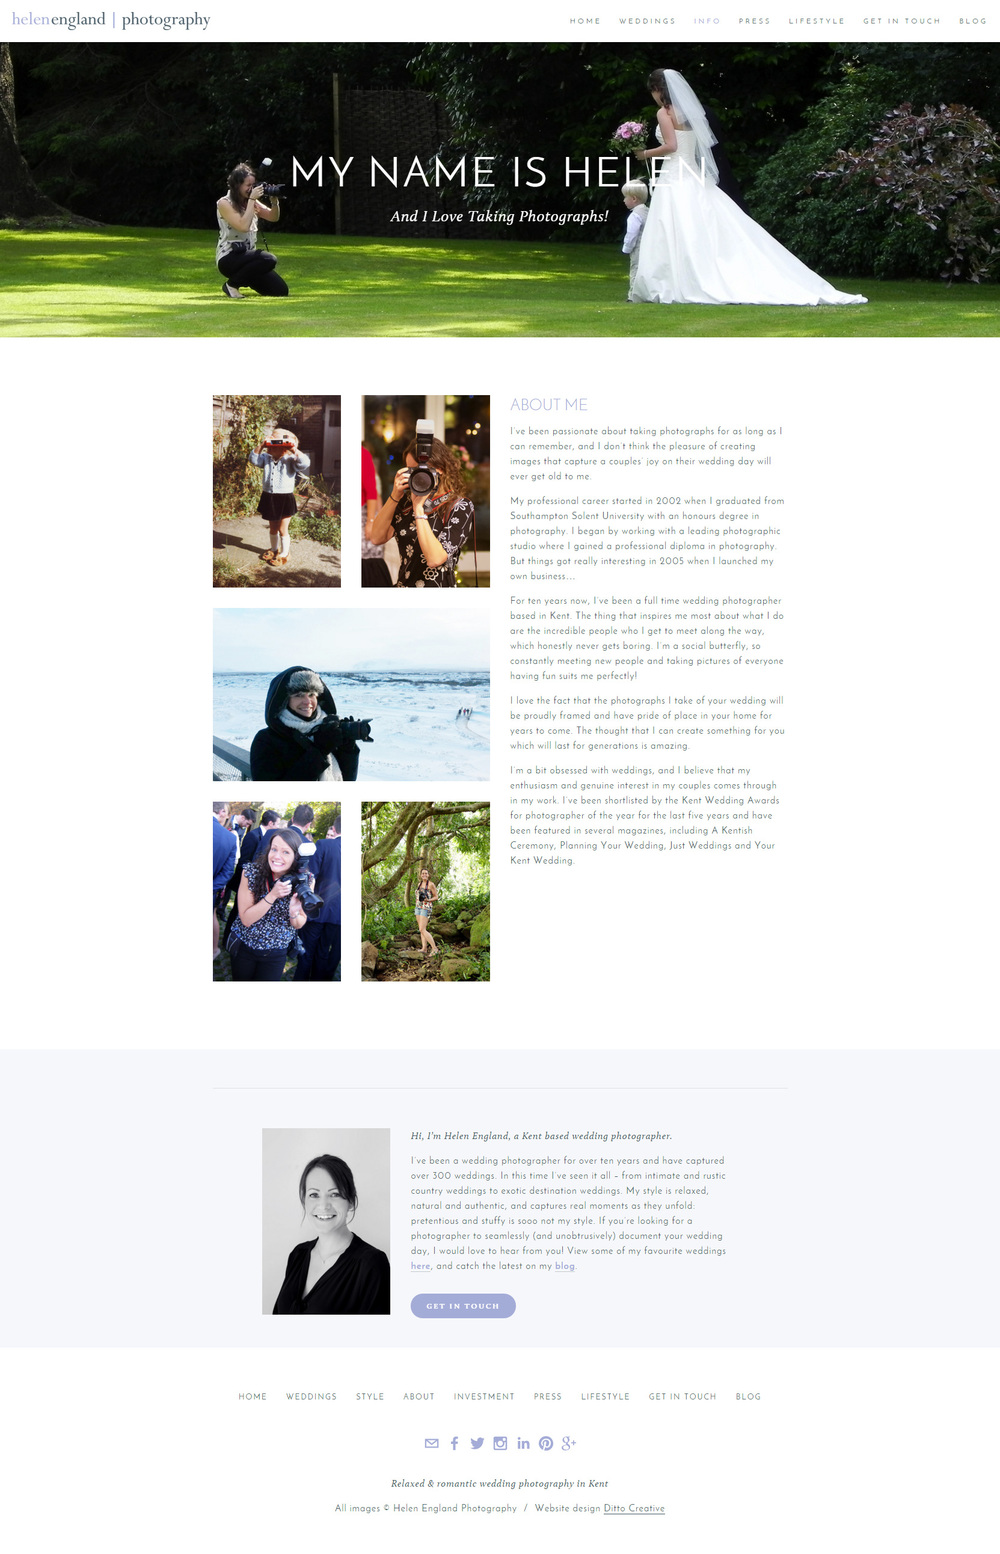 Helen England Photography, website design by Ditto Creative, Kent